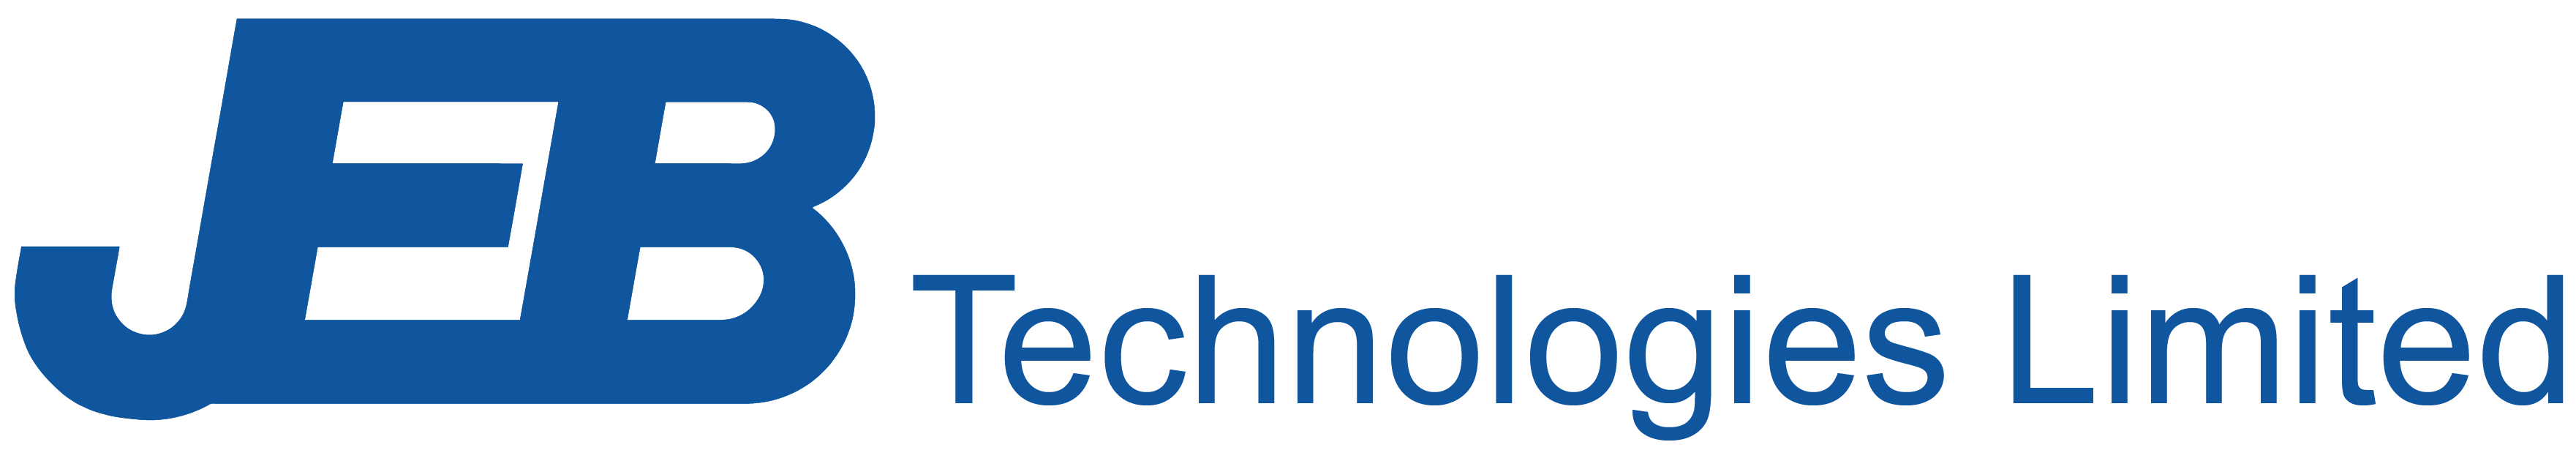 JEB Technologies Ltd